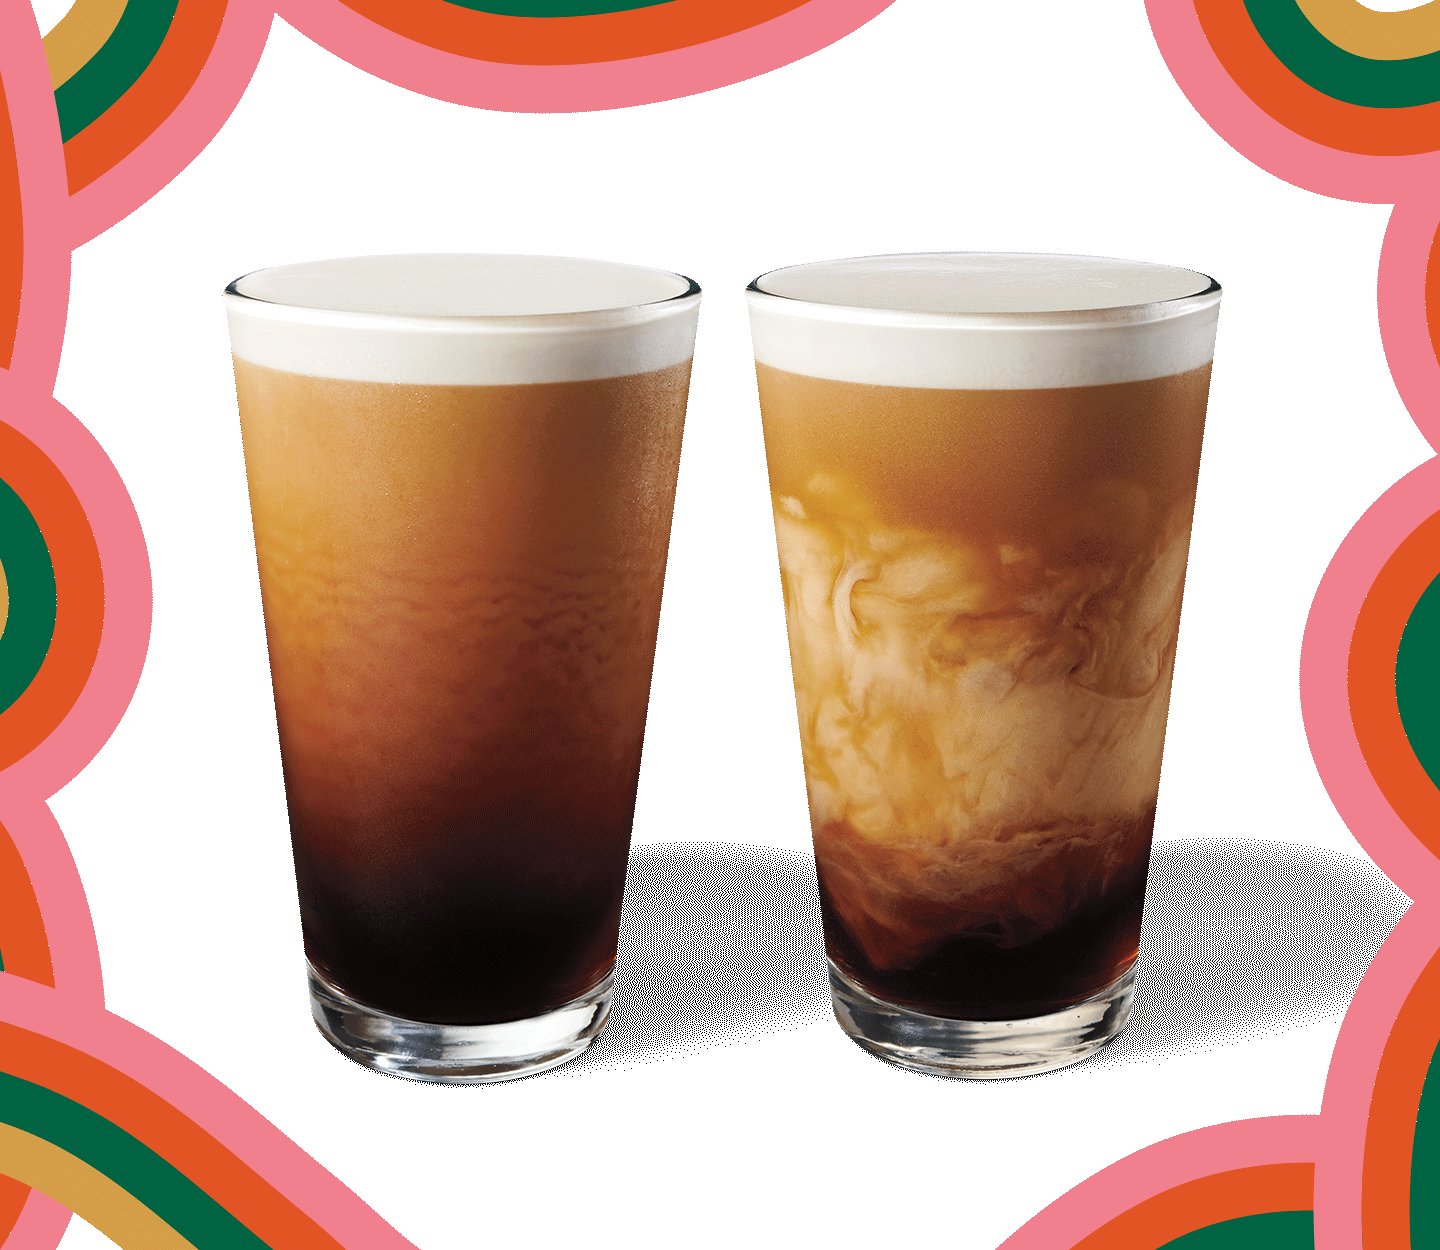 A Nitro Cold Brew sits next to an Nitro Cold Brew with Vanilla Sweet Cream in a fall swirl layout.